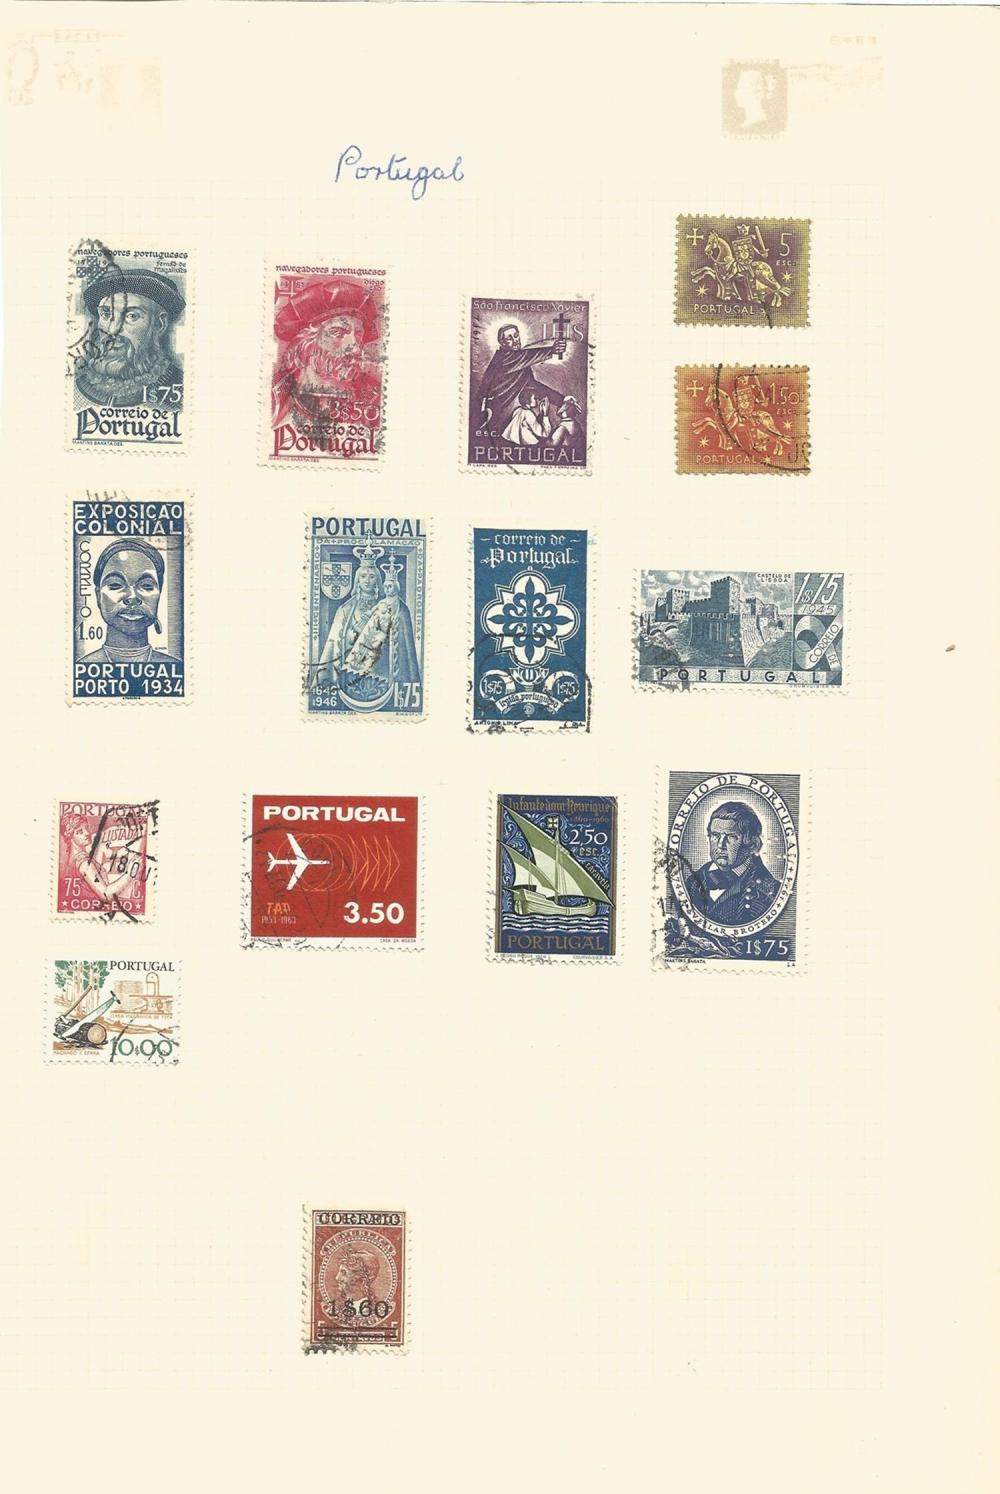 Portugal, Greece, Monaco, Norway, stamps on loose sheets, approx. 60. Good condition. We combine